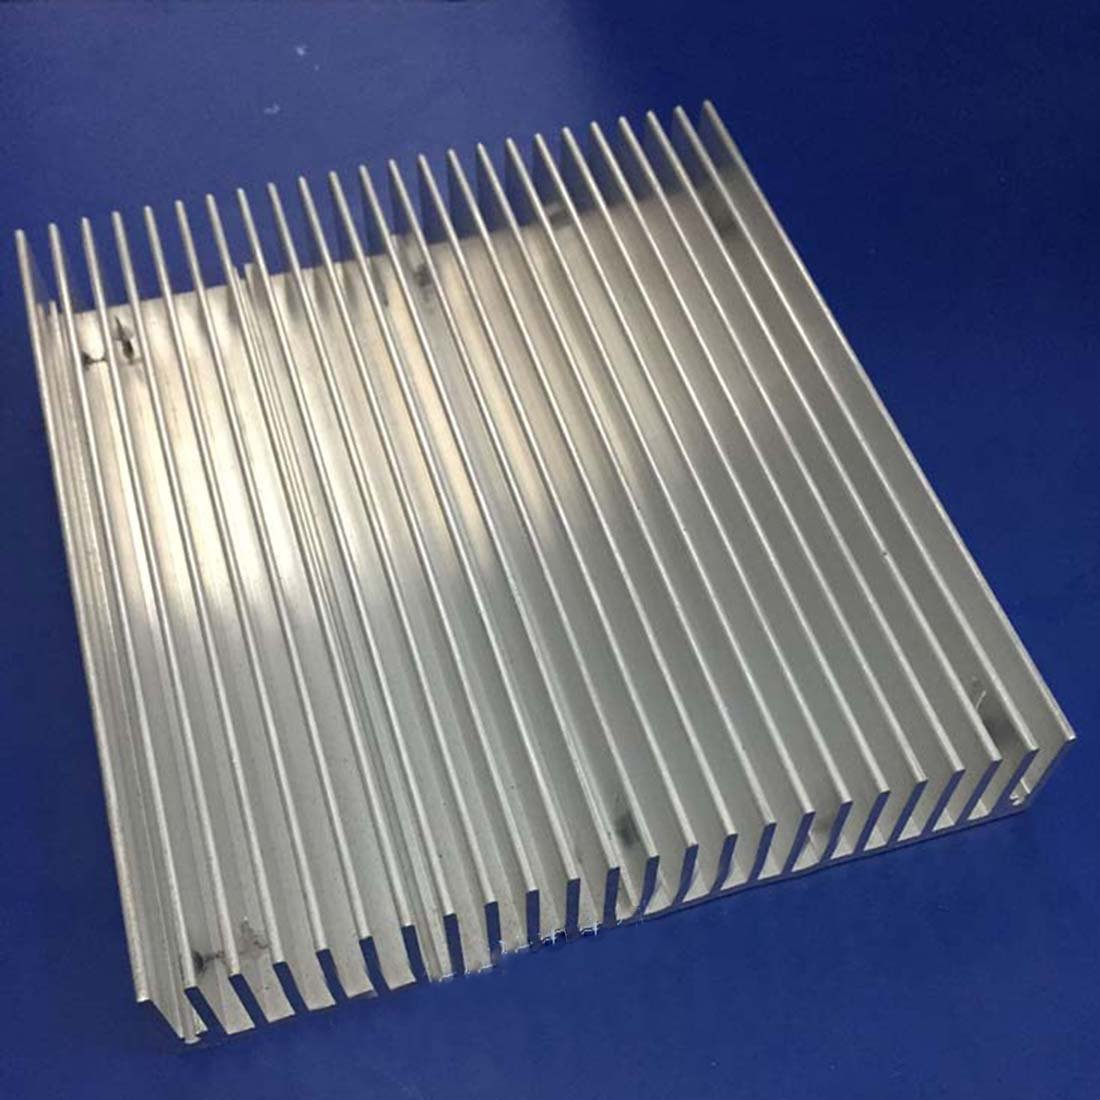 uxcell Aluminum Heatsink Cooling Fin 150mmx60mmx25mm for Power Amplifier by uxcell (Image #3)